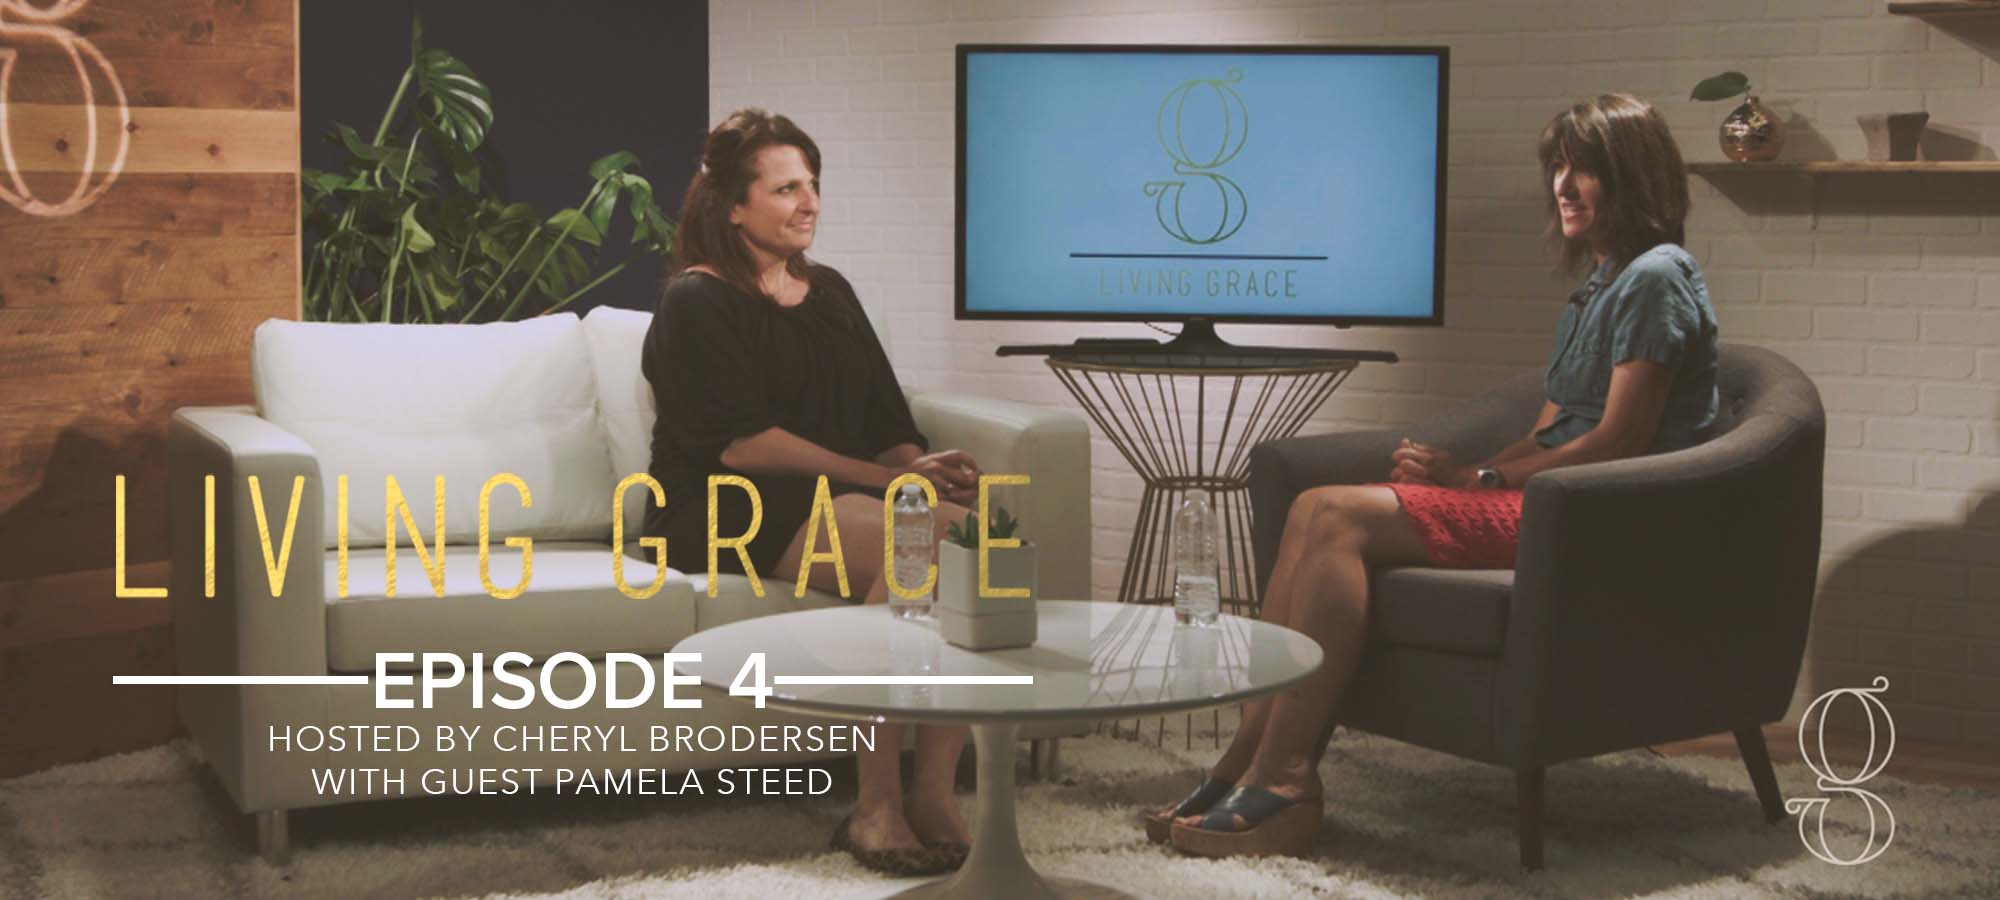 Living Grace Episode 4 - Interview with Pamela Steed